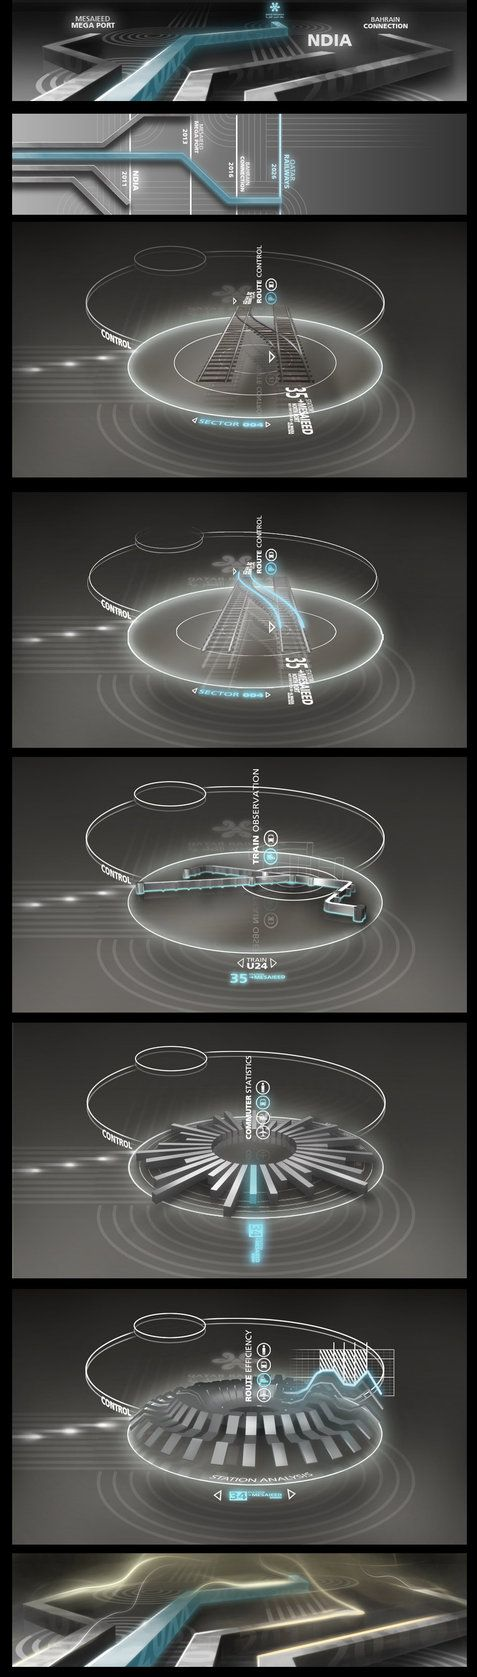 Motion Graphics/ Storyboards idea | Touchscreen interface concept by stereolize-design